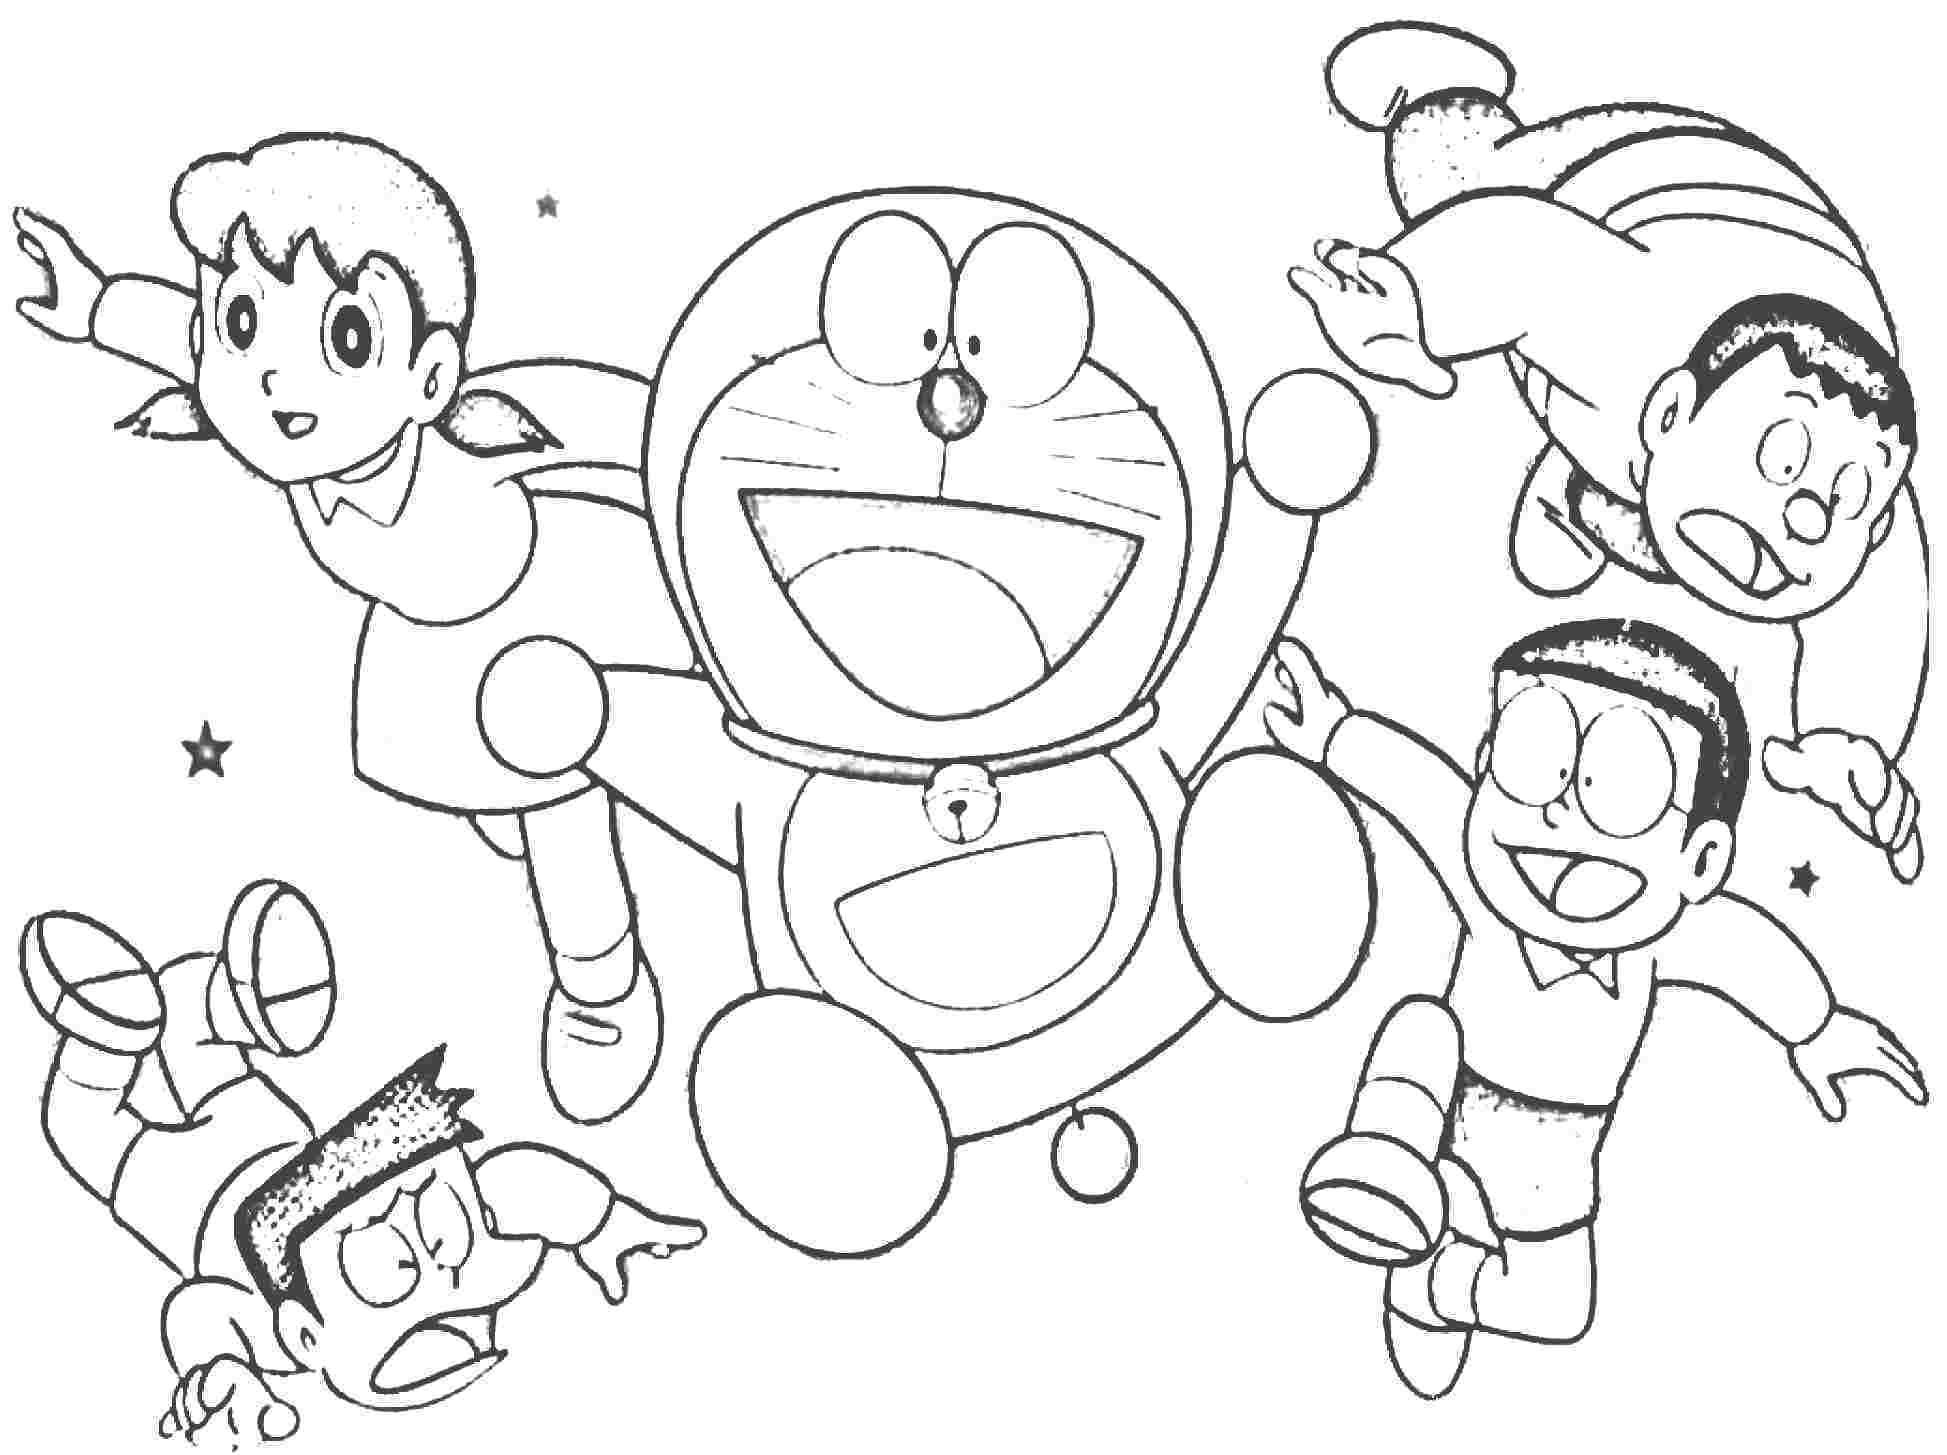 Cheerful Doraemon Coloring Book Makes Your Toddlers Love To Color Doraemon Is A Japanese Anime Series Writt Coloring Books Love Coloring Pages Coloring Pages